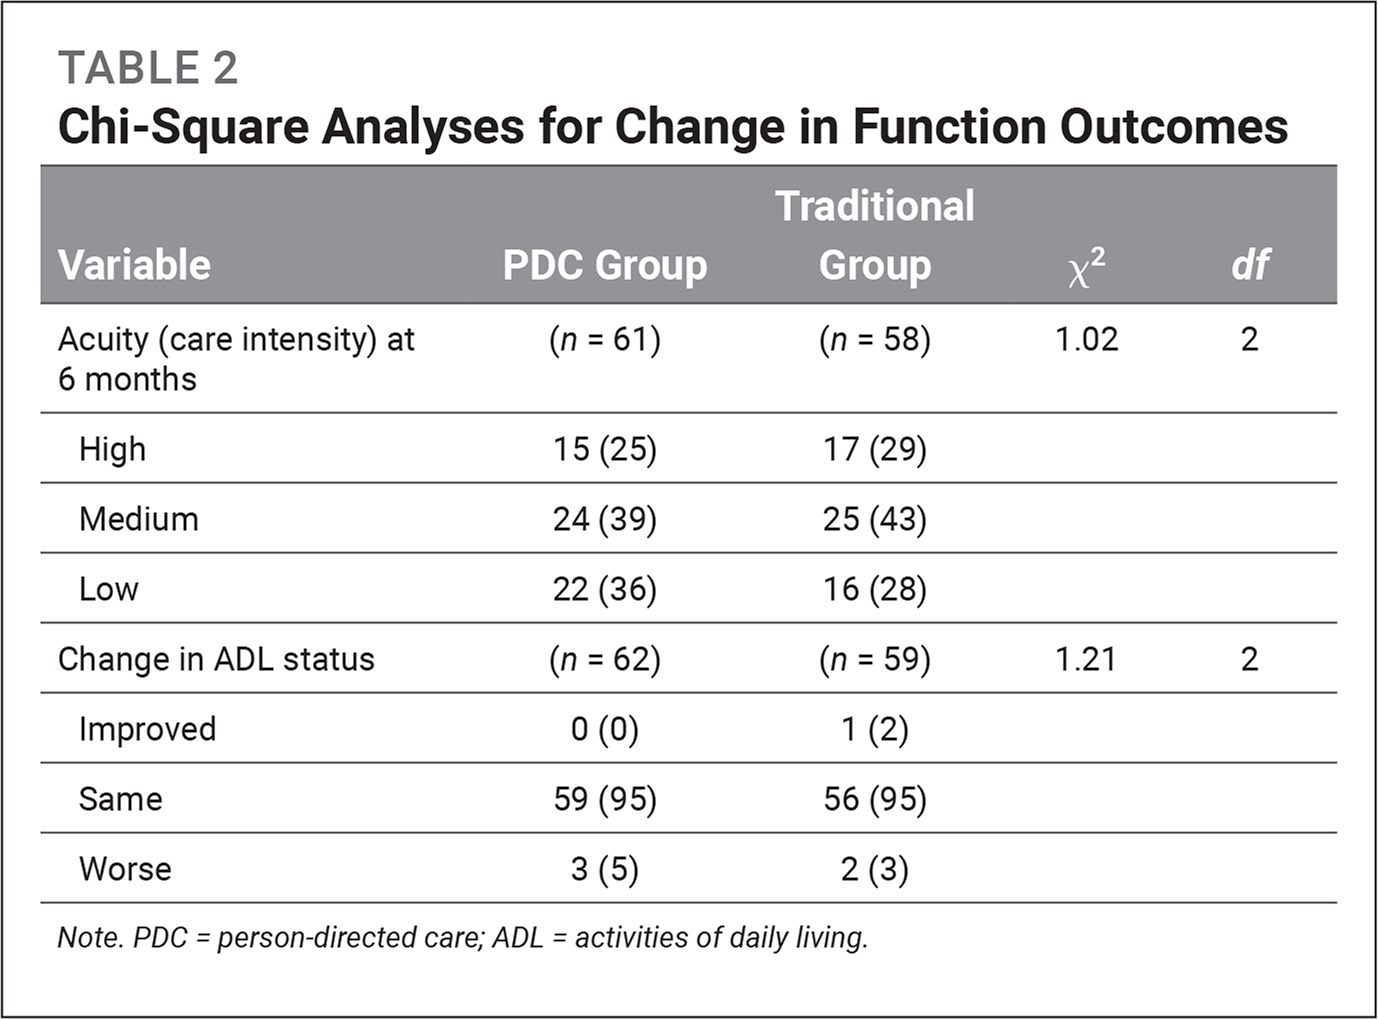 Chi-Square Analyses for Change in Function Outcomes